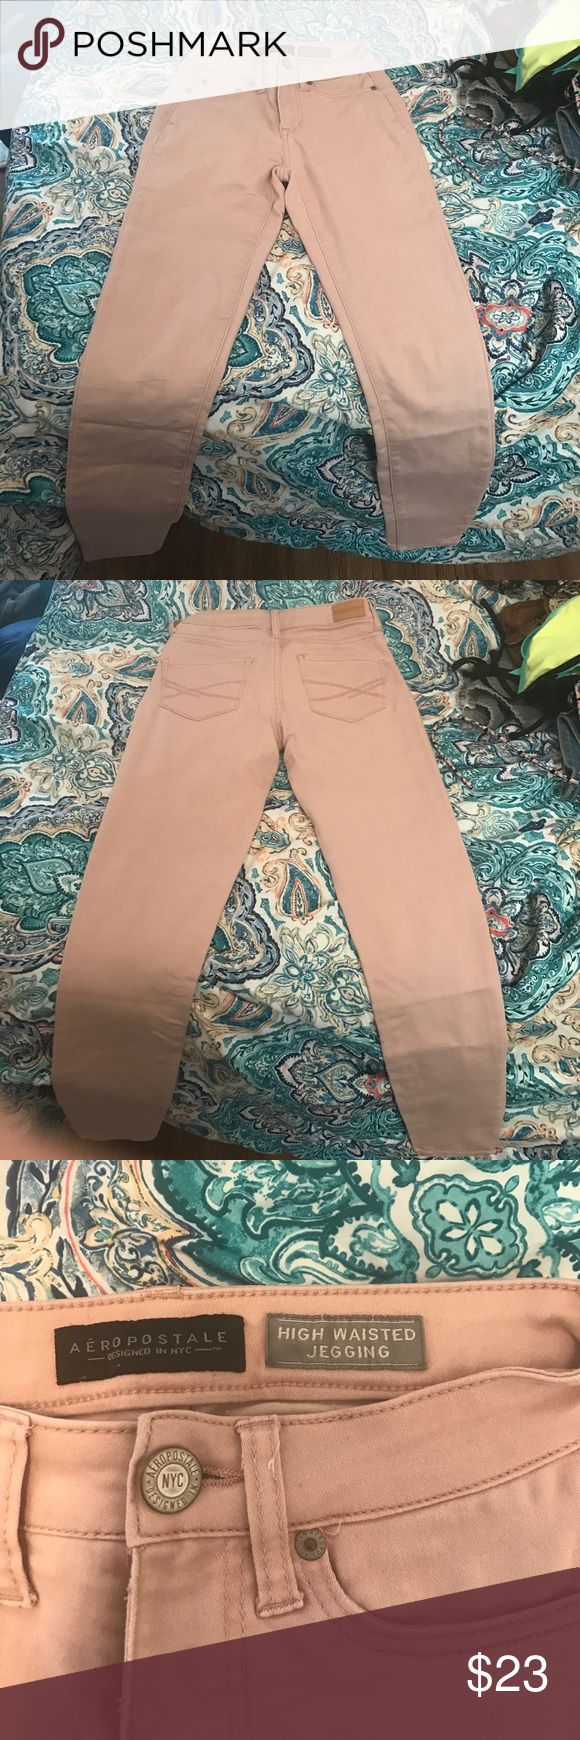 High wasted nude jeans Jegging material nude jeans! Very comfortable and stylish Aeropostale Jeans Skinny